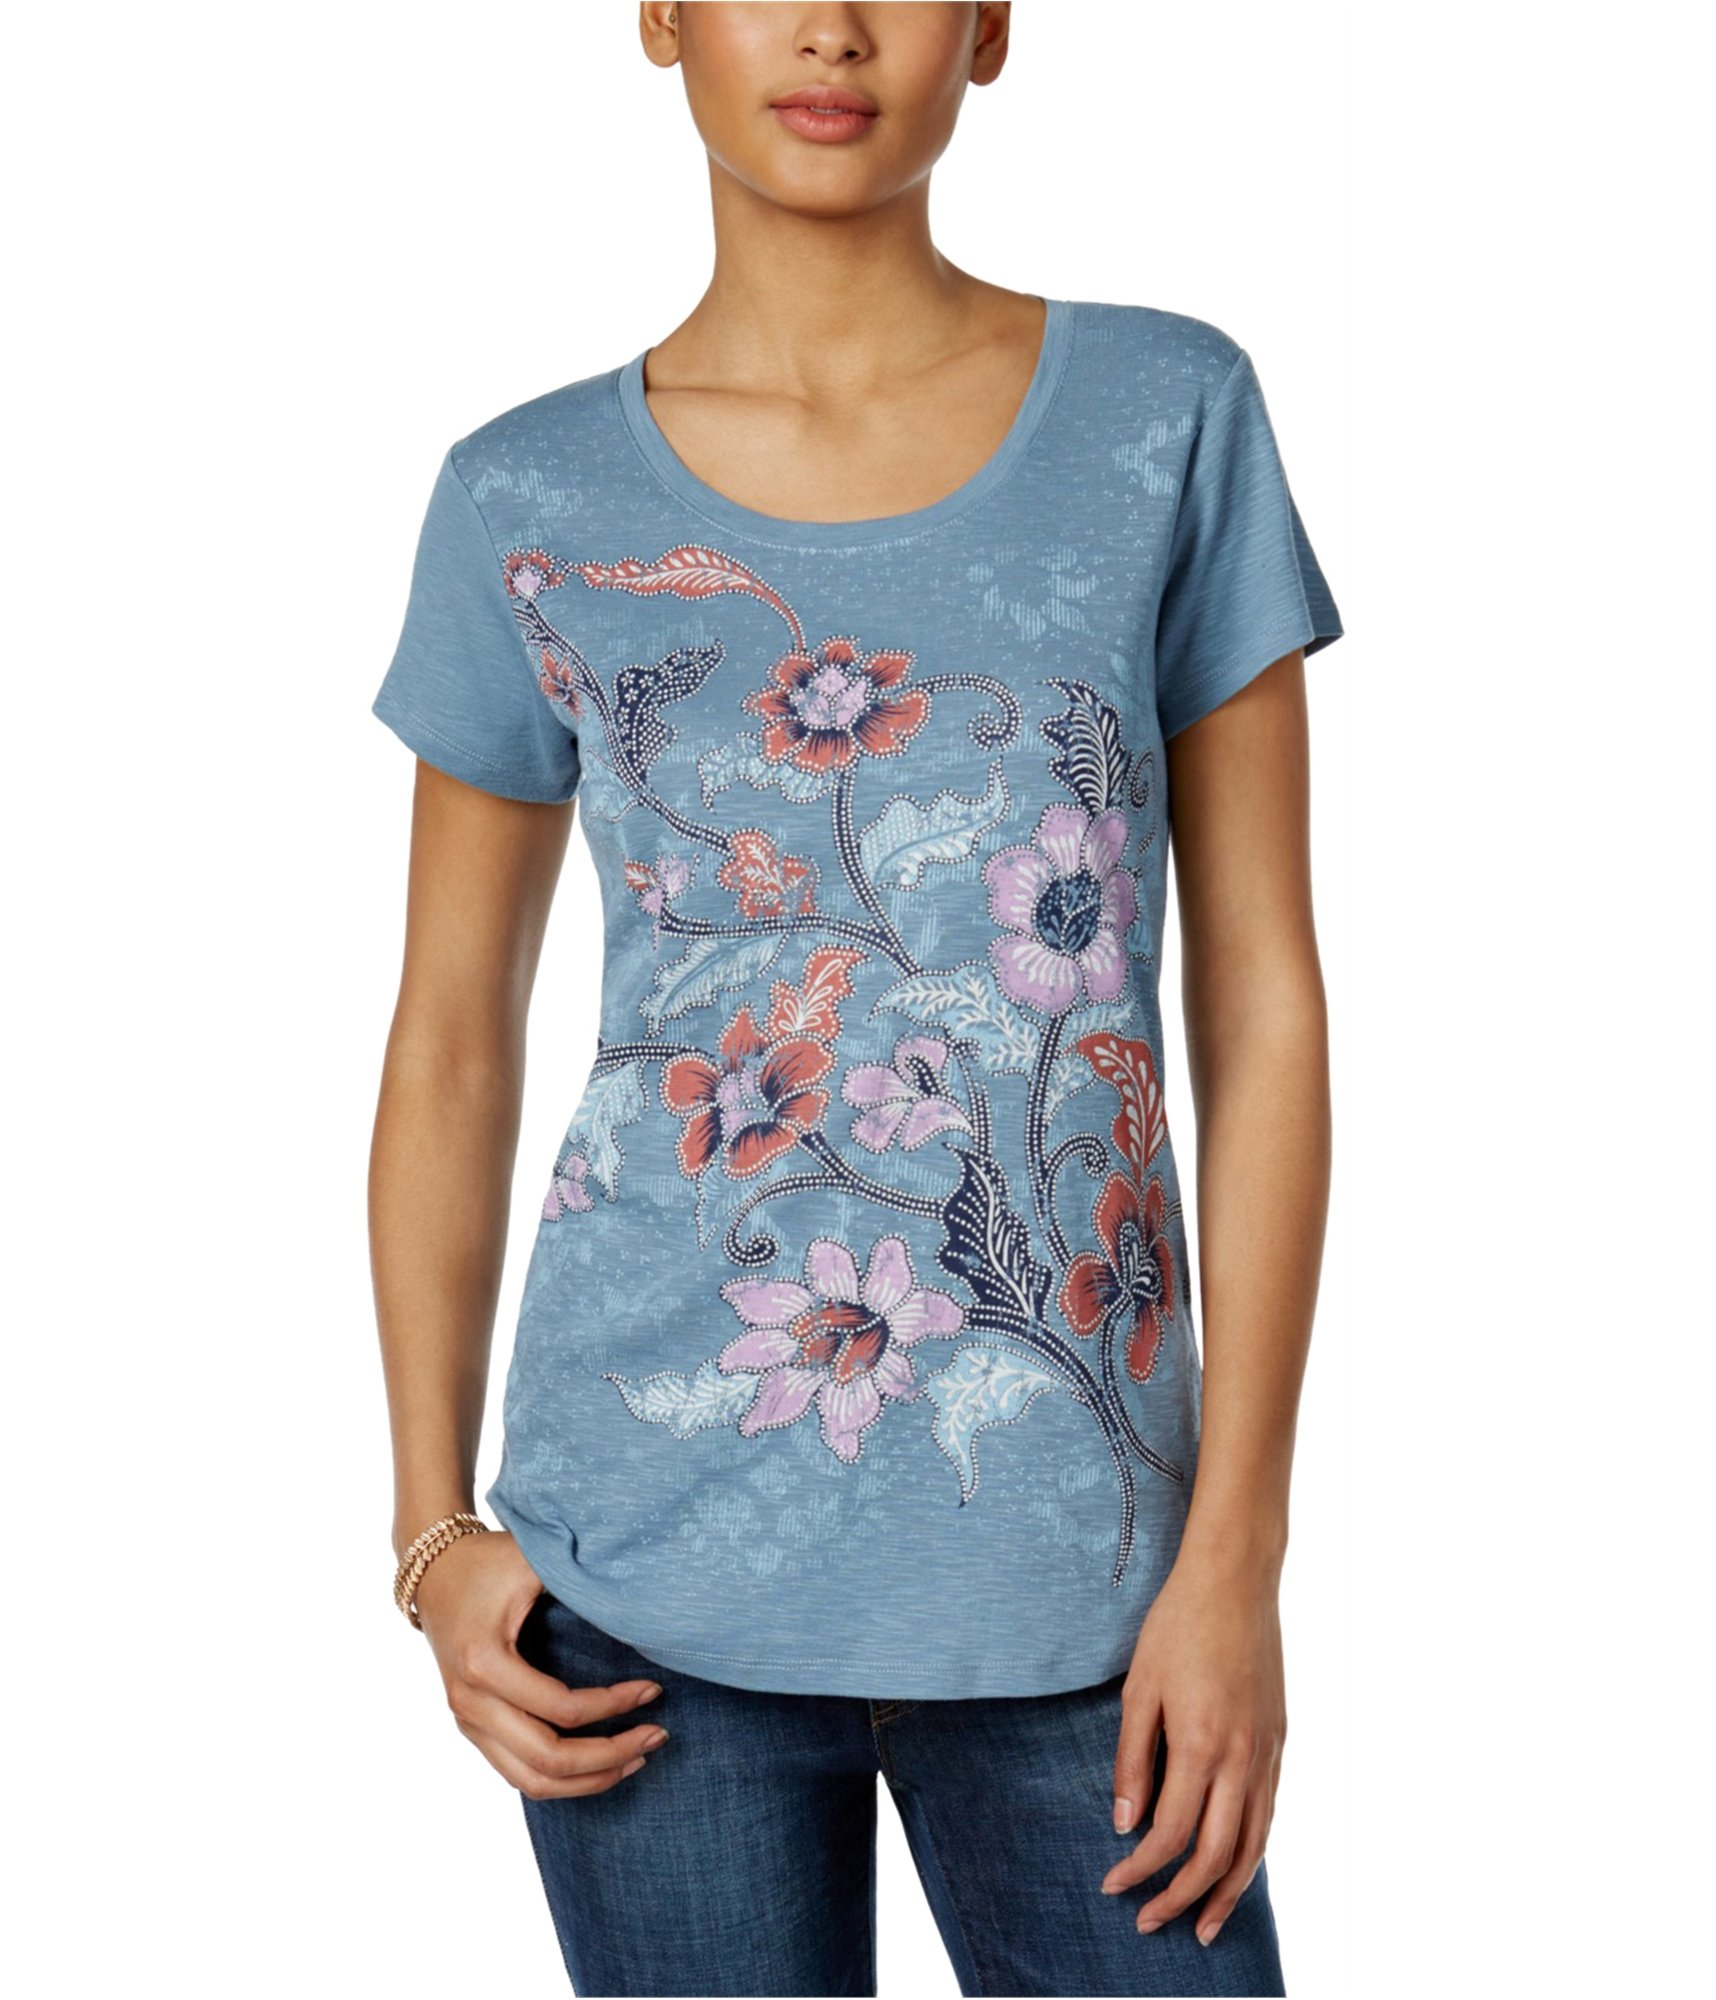 Style & Co.. Womens Floral Graphic T-Shirt Blue XL